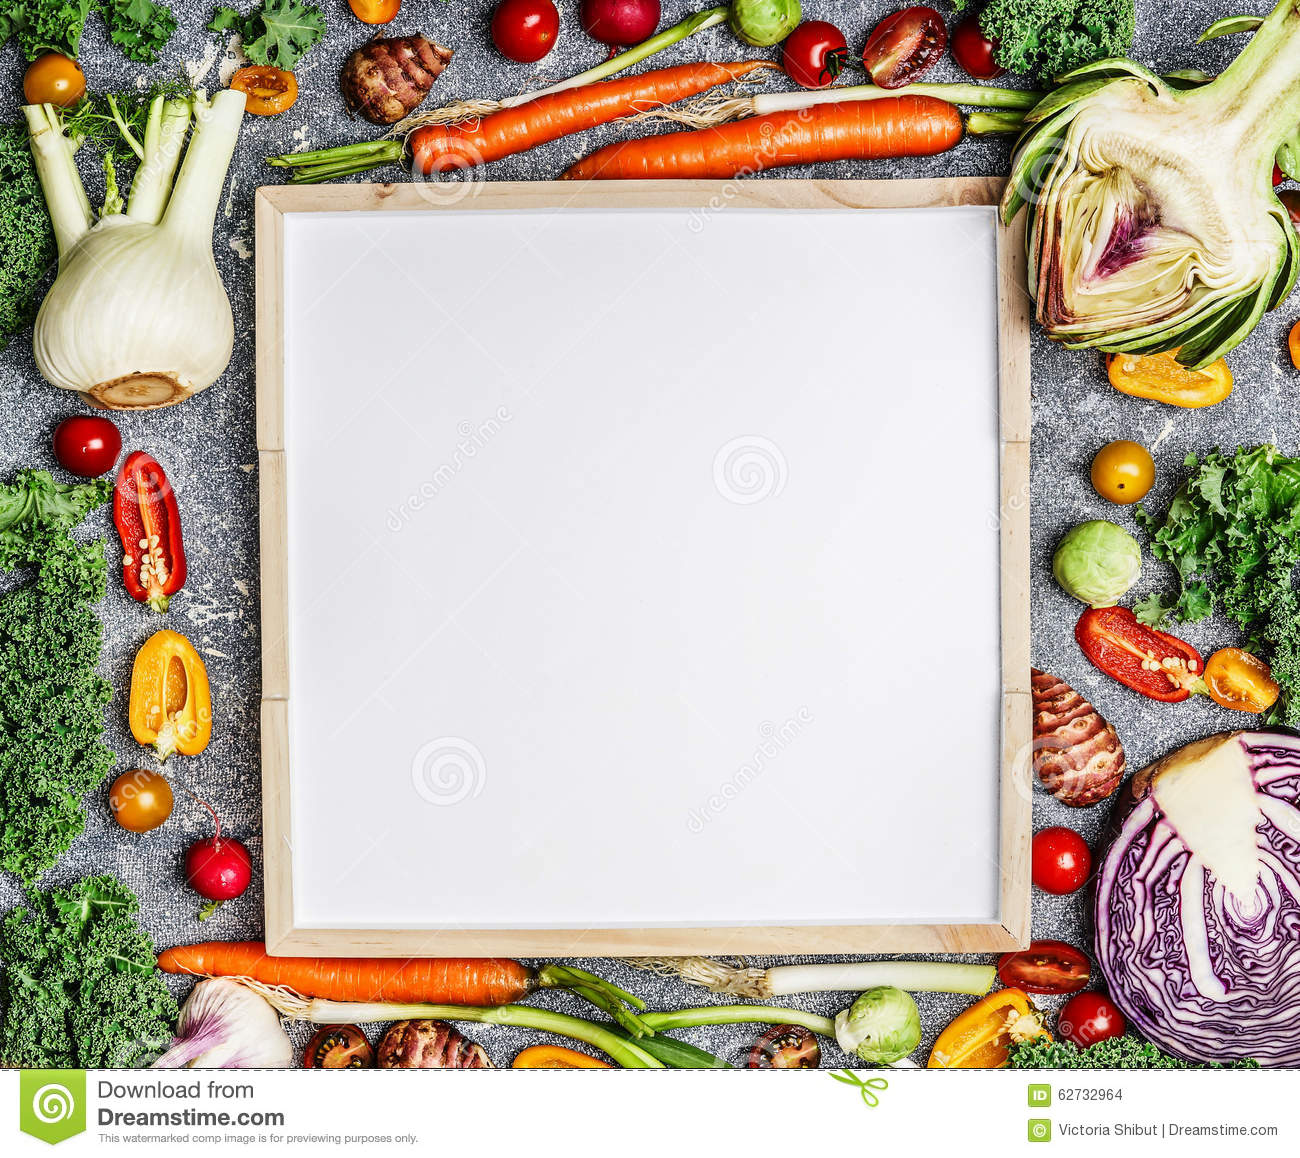 Vegetarian food, health and diet nutrition background with variety of fresh farm vegetables around a blank white chalkboard, top